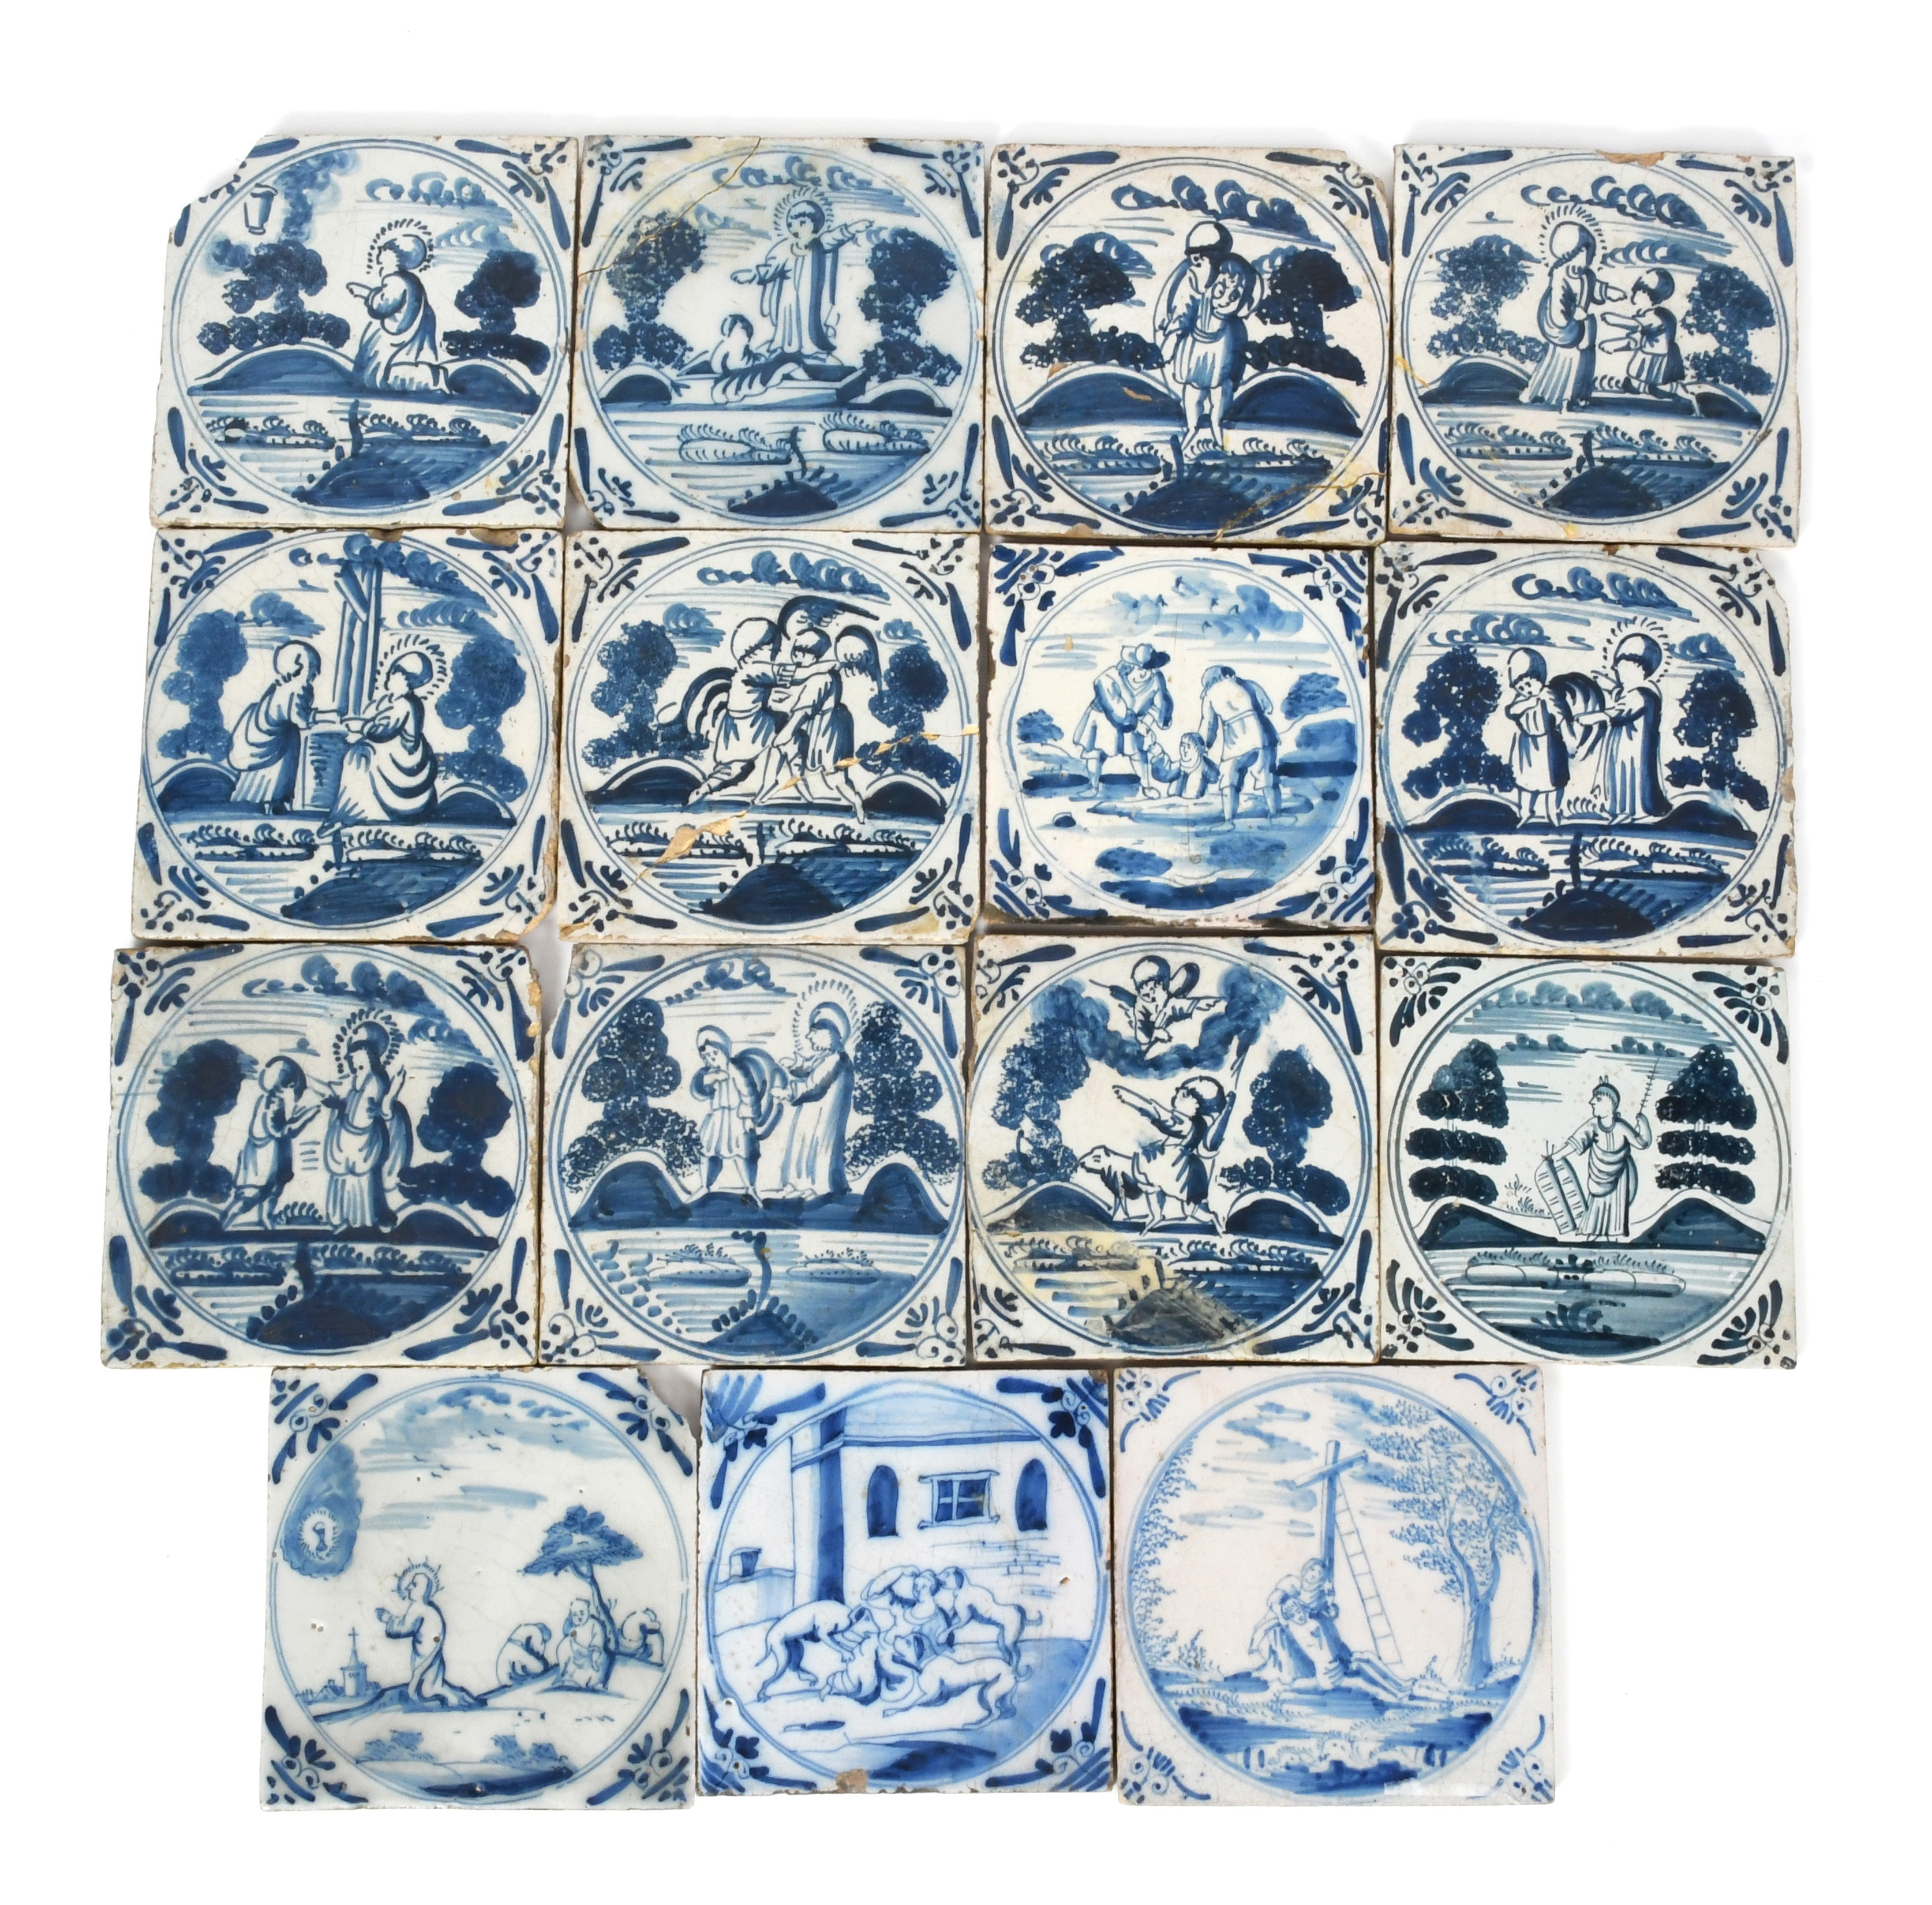 Fifteen Delft Biblical tiles c.1700-40, Dutch and English, painted in blue with varying scenes